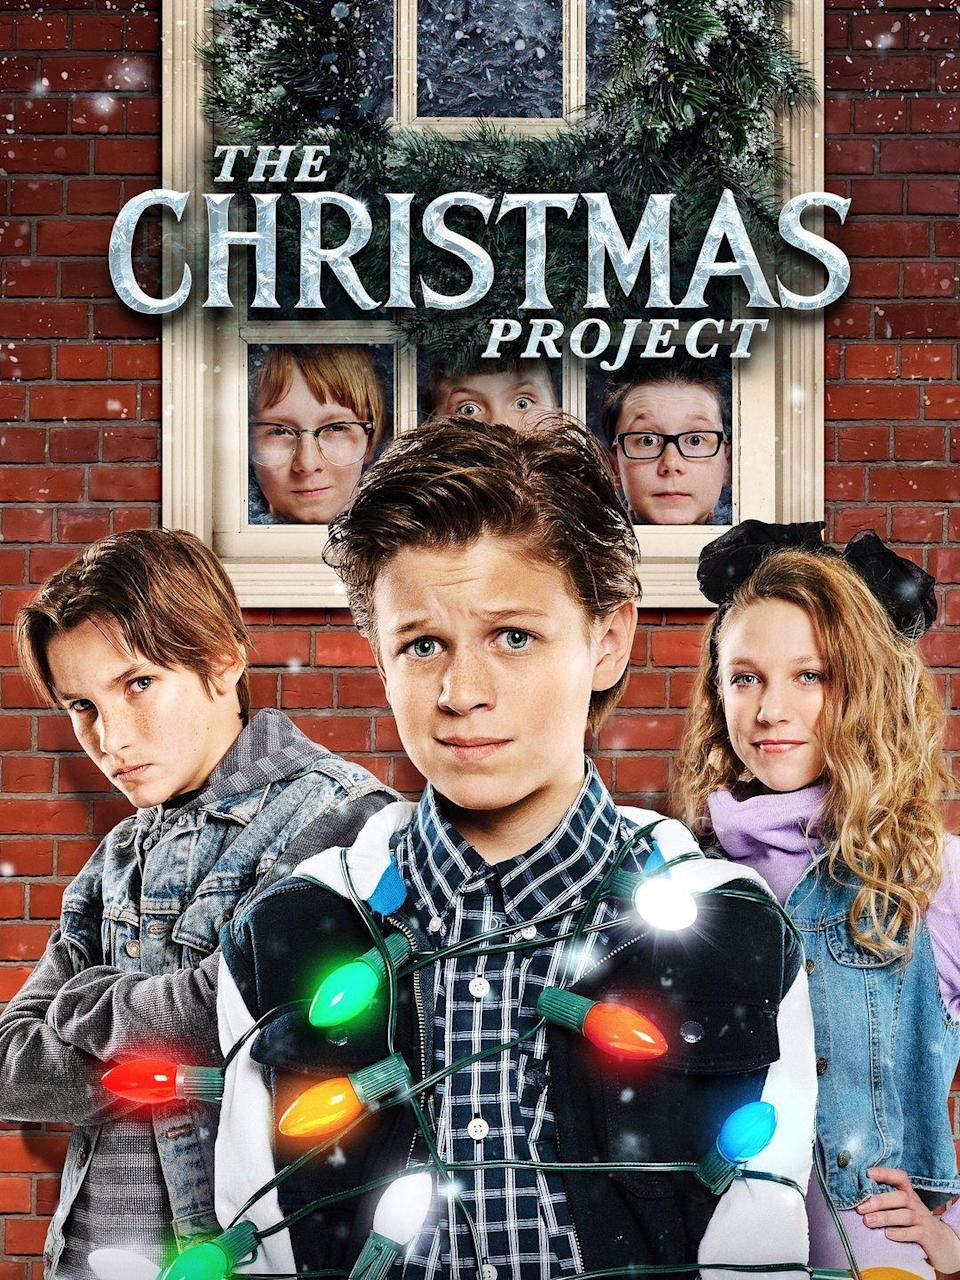 """<p>A man remembers a particularly meaningful Christmas from his childhood, where he learned about bullies, family, and first loves.</p><p><a class=""""link rapid-noclick-resp"""" href=""""https://www.netflix.com/title/80156772"""" rel=""""nofollow noopener"""" target=""""_blank"""" data-ylk=""""slk:STREAM NOW"""">STREAM NOW</a></p>"""